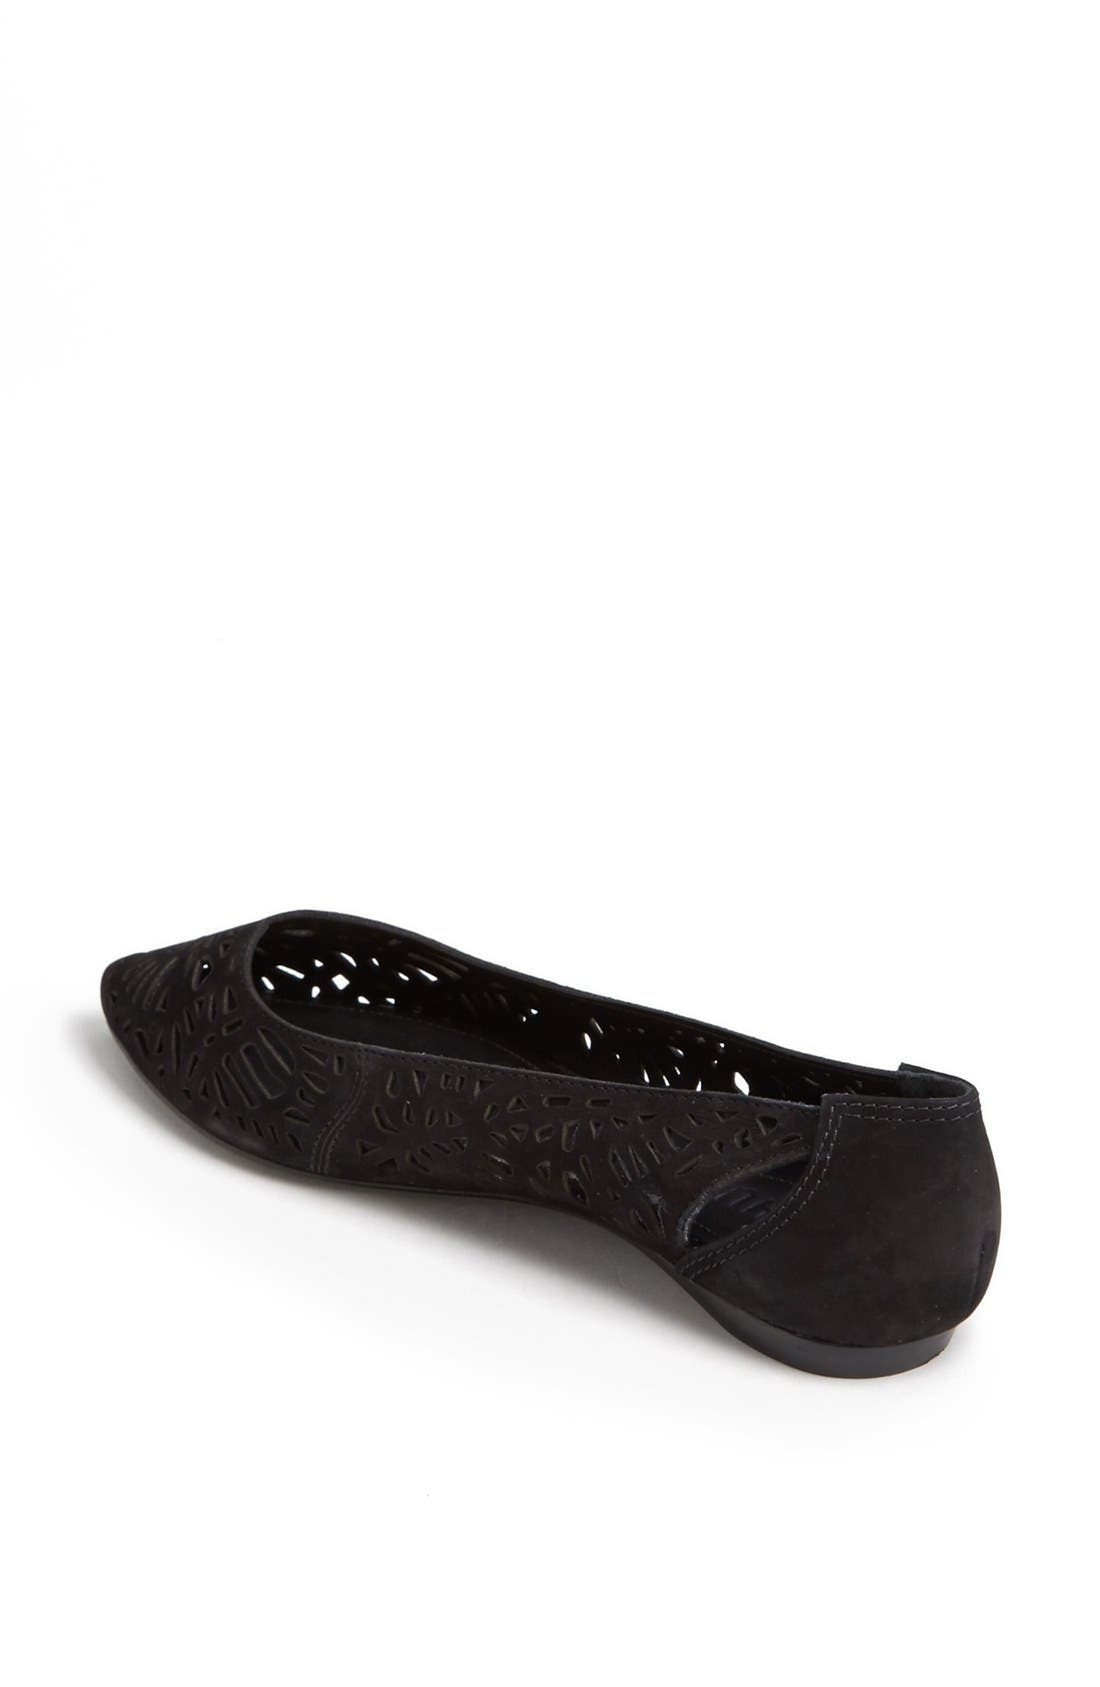 'Cicely' Perforated Flat,                             Alternate thumbnail 7, color,